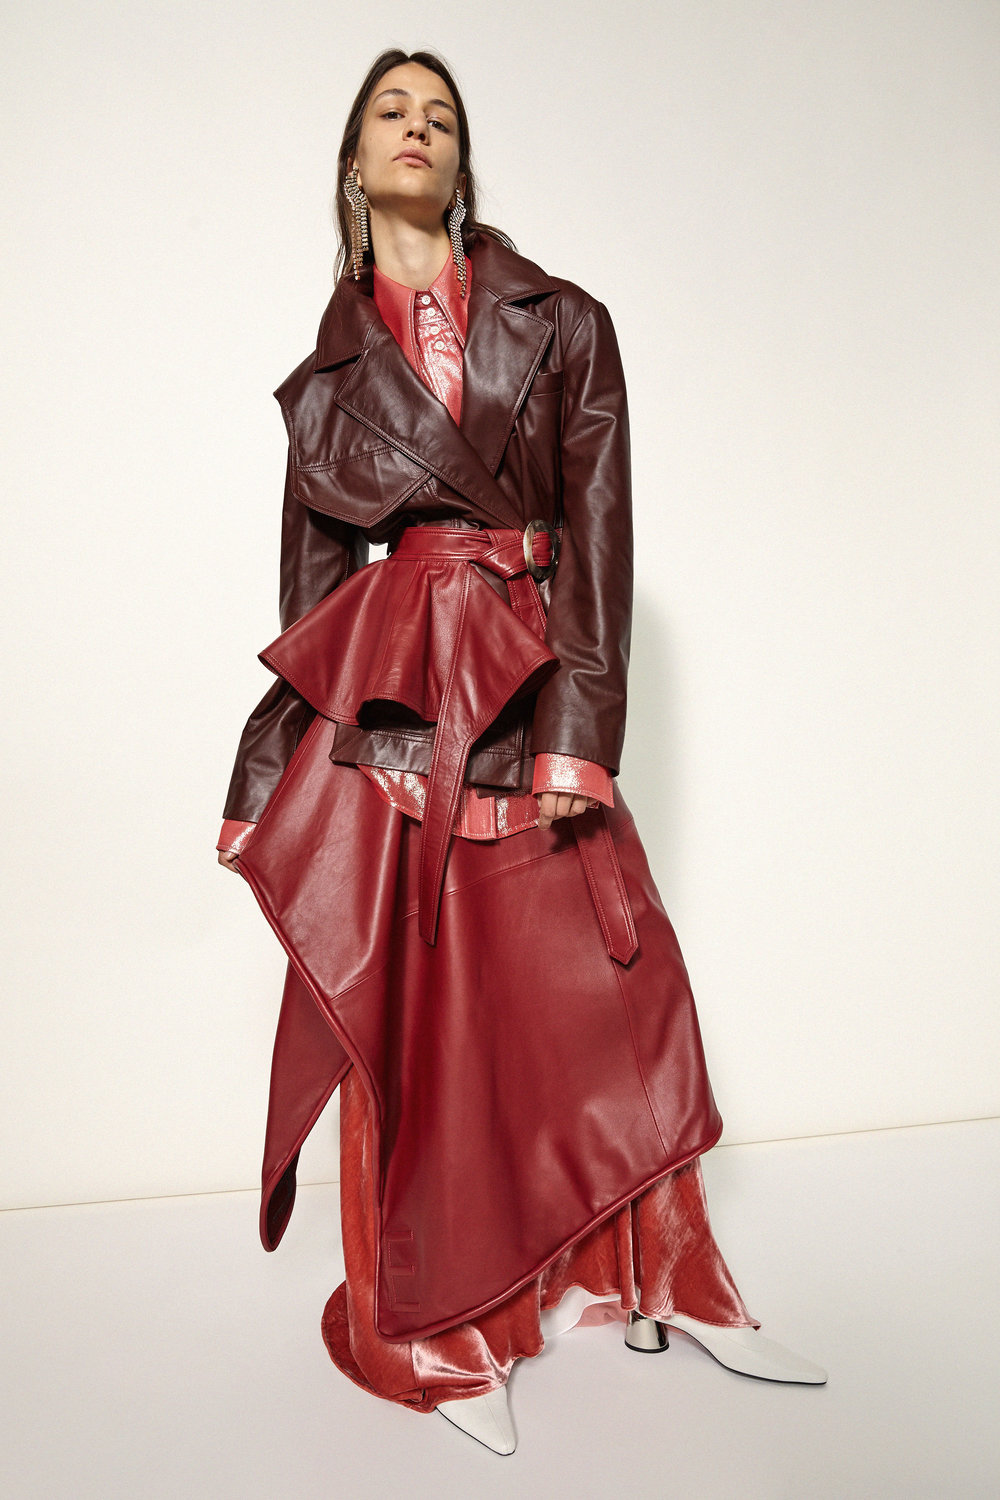 ELLERY_FALL19_PHOTOGRAPHER_KYMELLERY_LOOK14.jpg